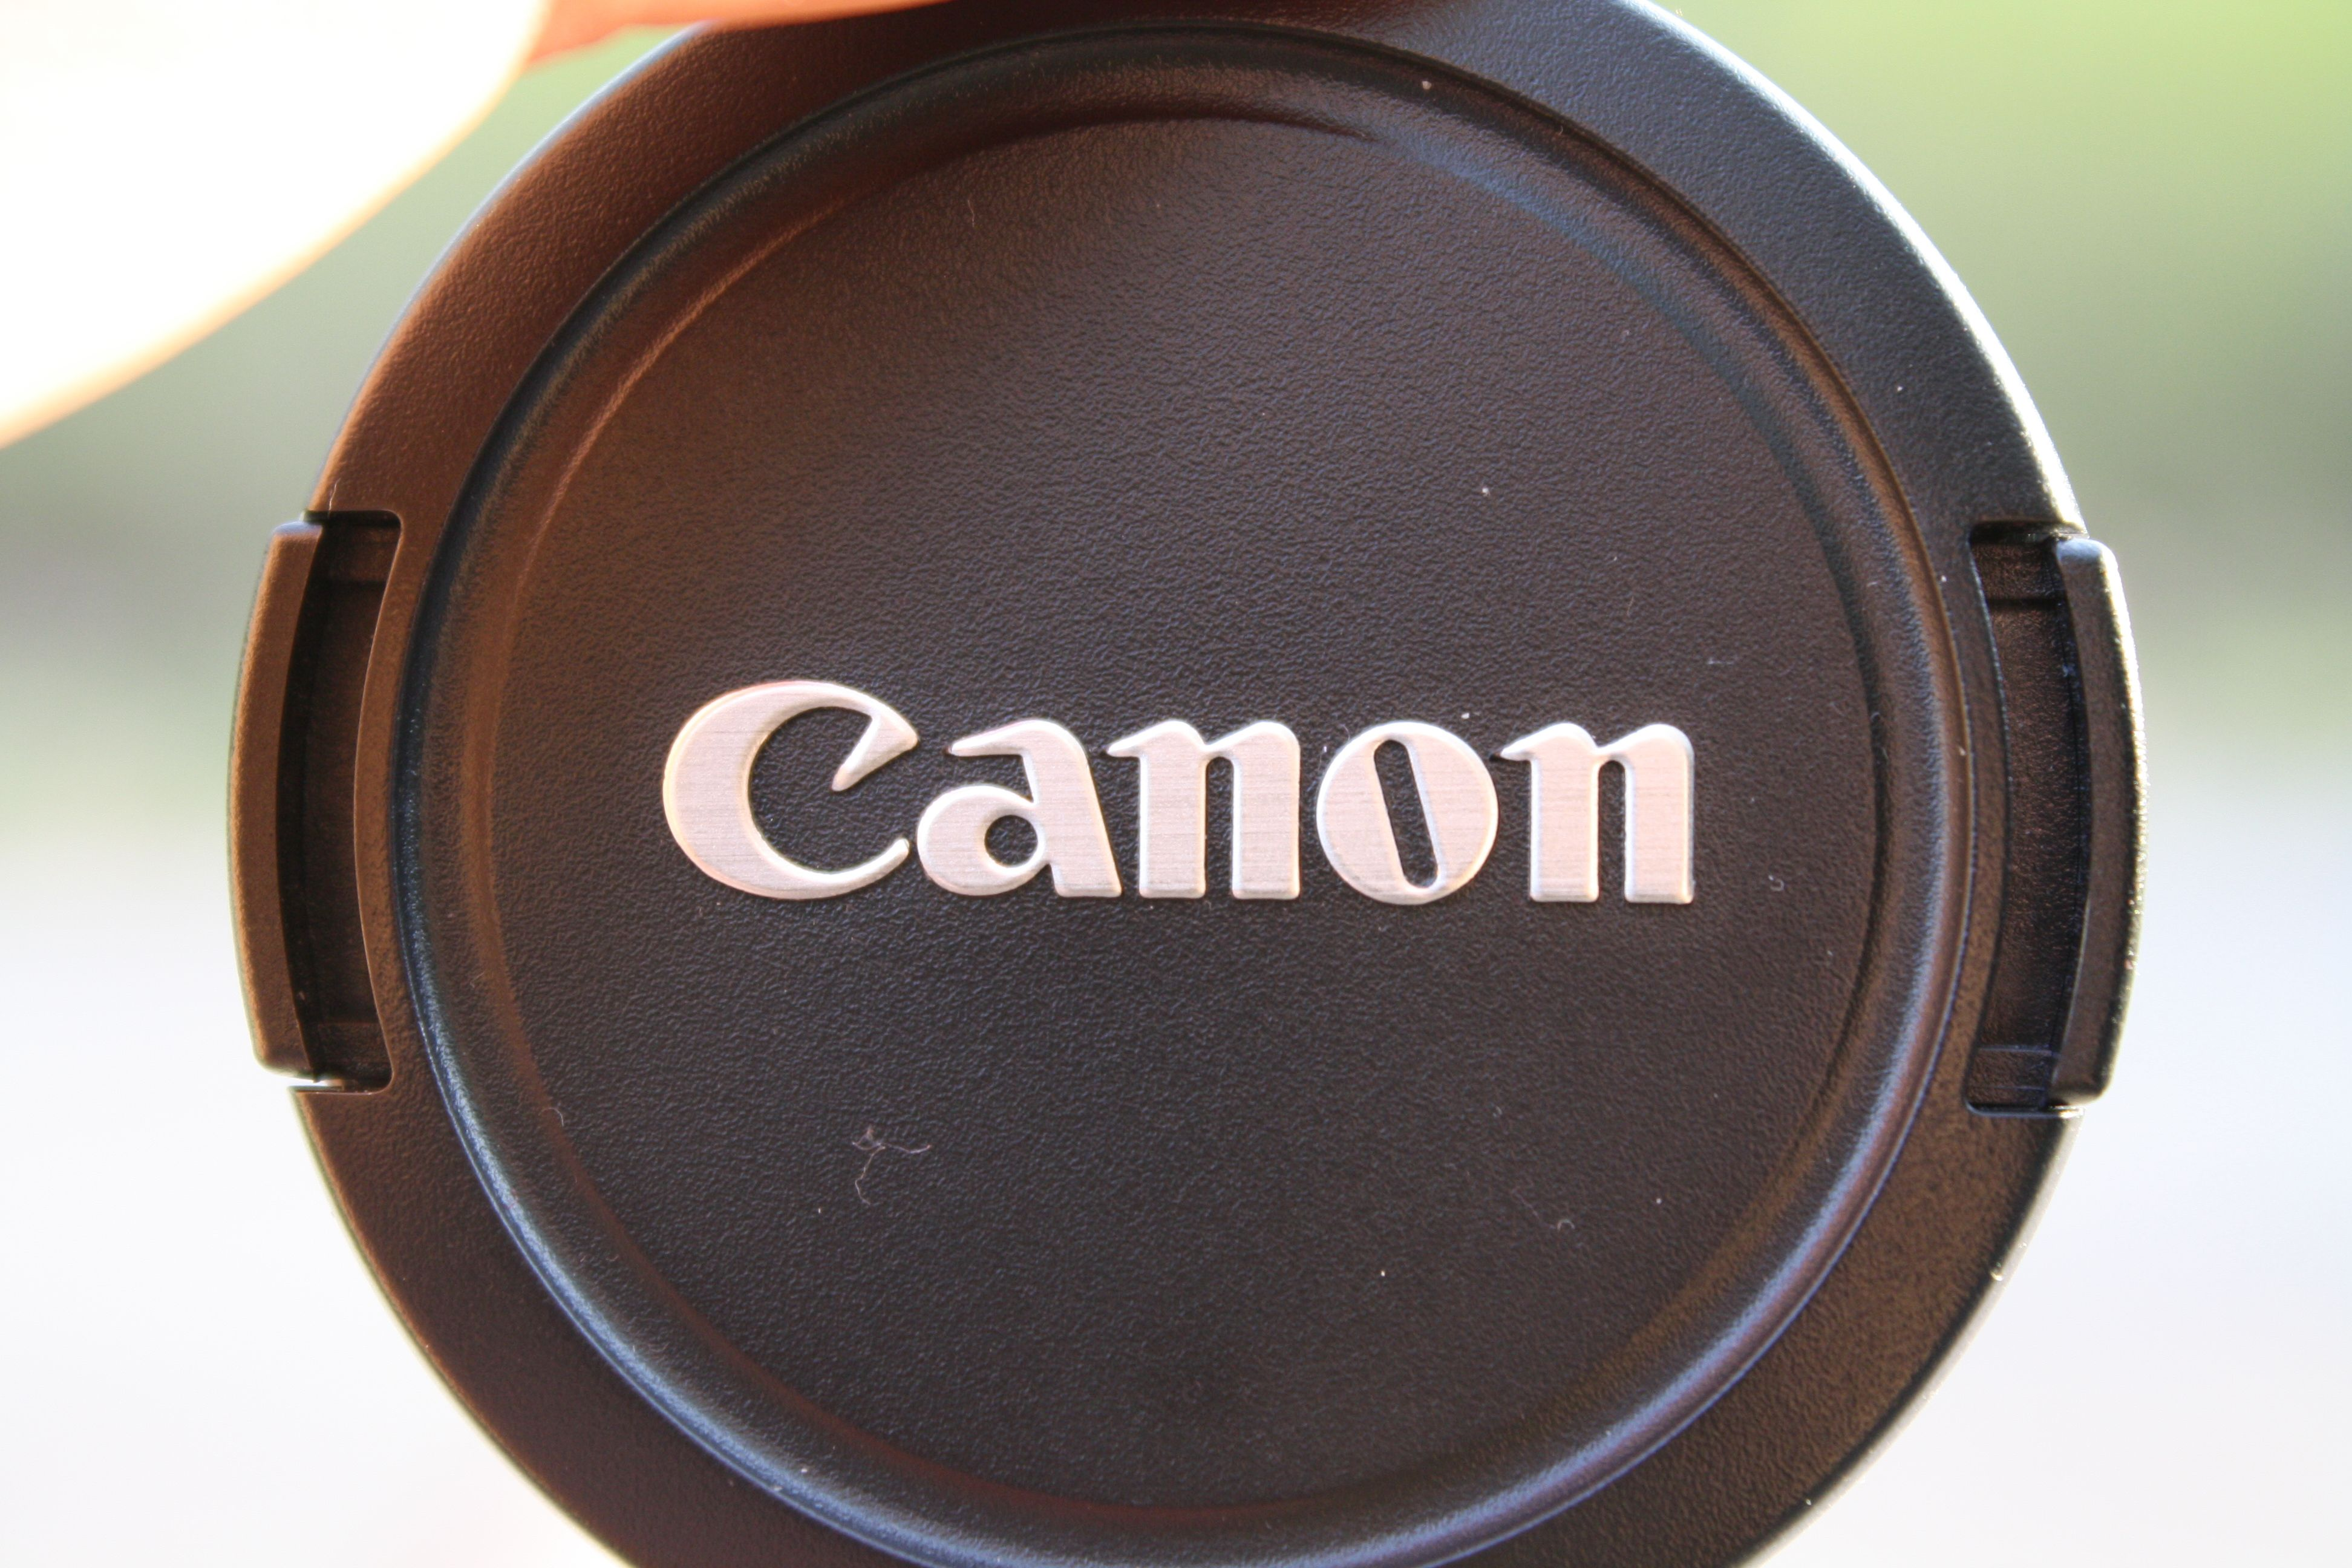 Love my DSLR..!! Now I have to learn how to use it....lol..!